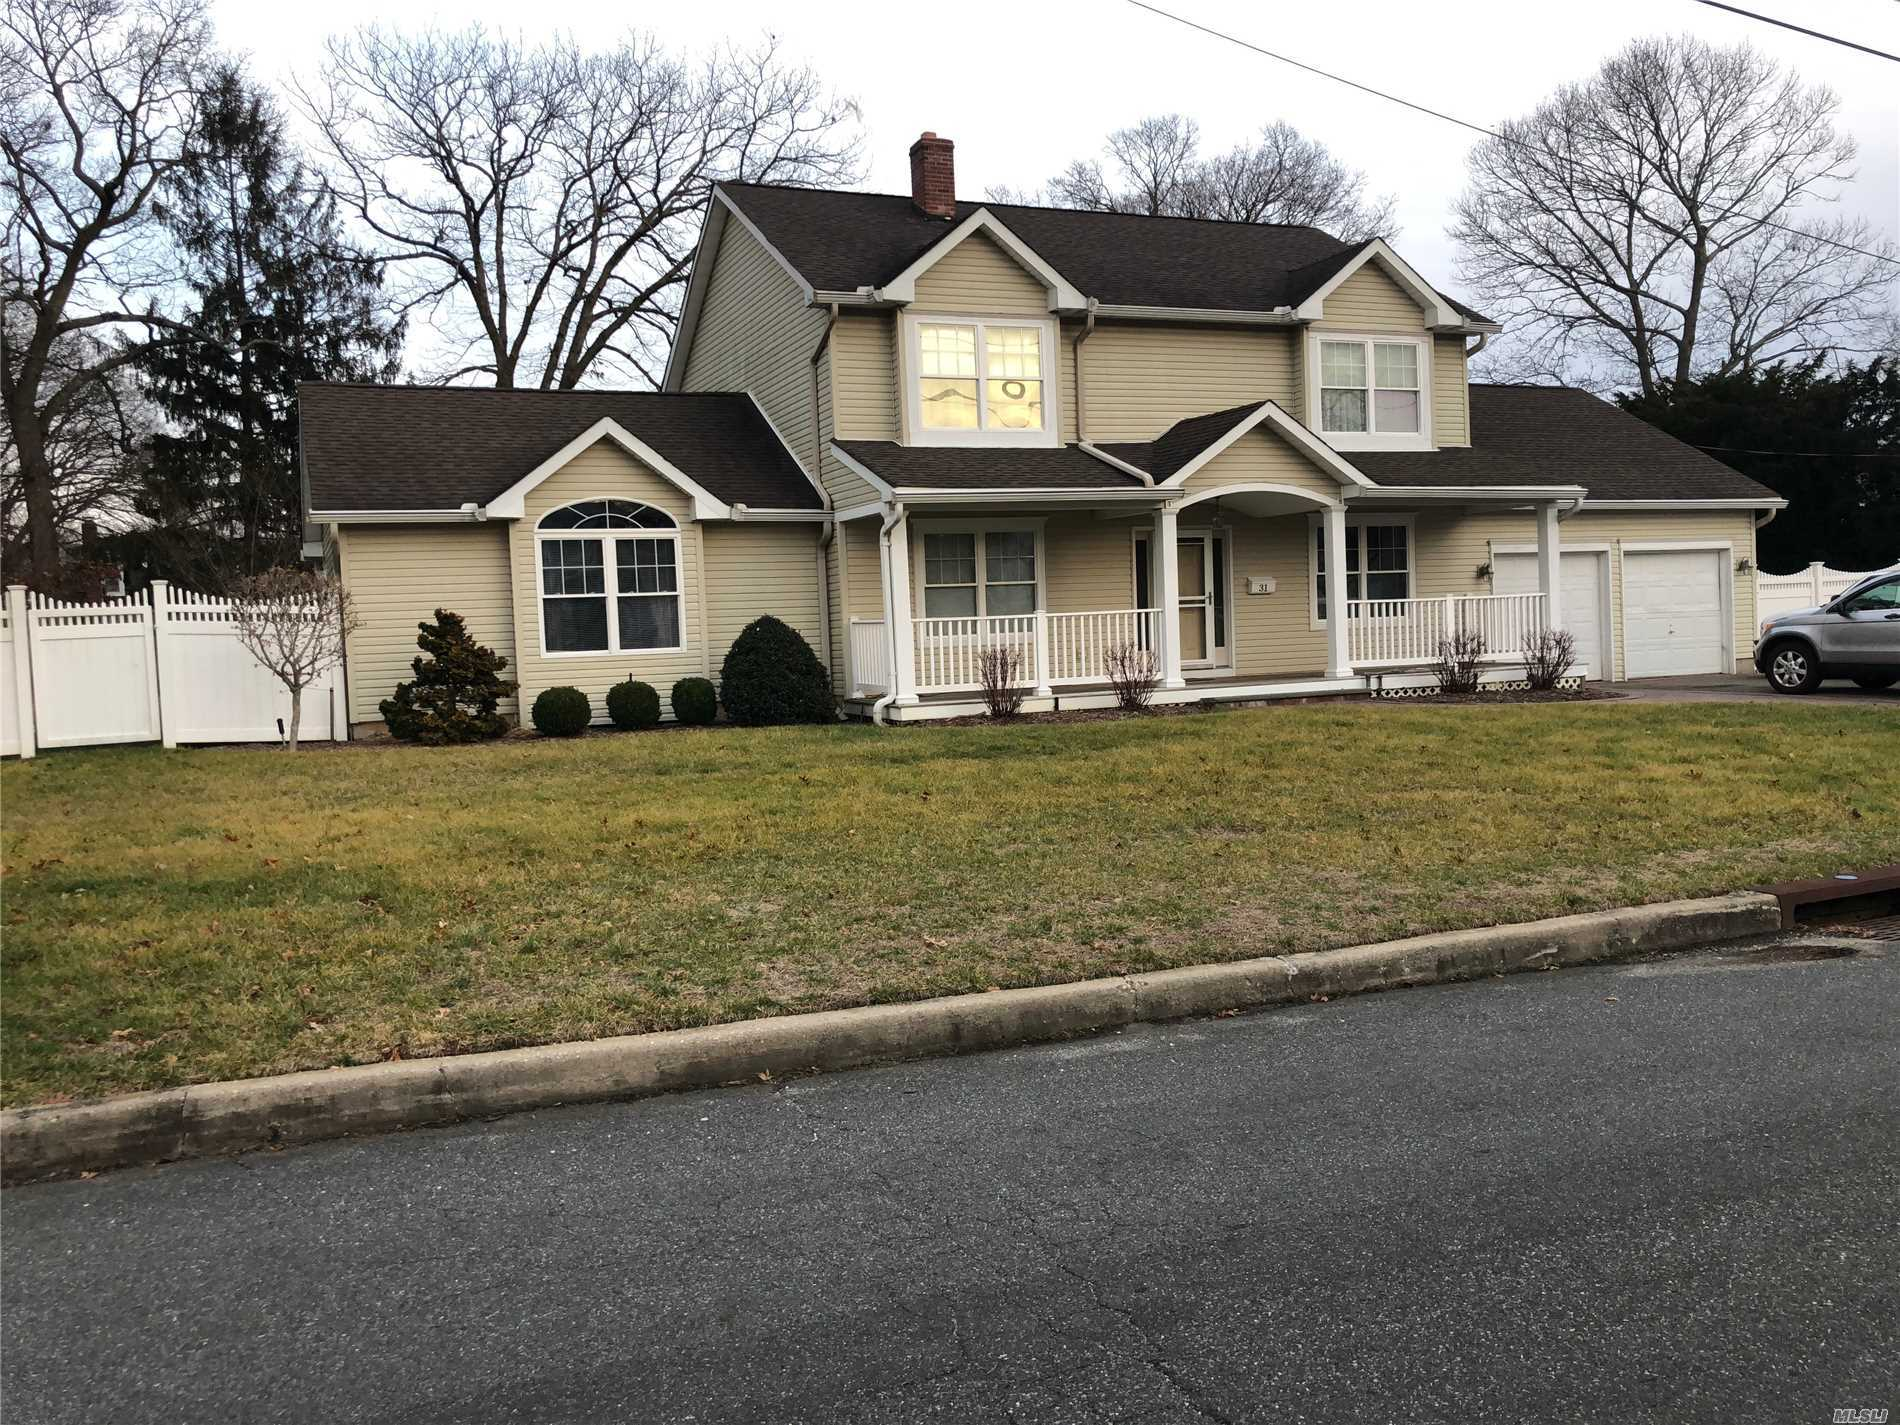 Beautiful Kings Park Colonial Renovated In 2006 Features 4 Bedrooms, 2 Bathrooms, Formal Living Room, Large Great Room, Eat-In-Kitchen With Doors Leading To Beautiful Backyard Set On .38 Of Acre With Paver Patio, And Office. 2 Car Garage, Vinyl Siding, 2 Zone Central Air (2013), 200 Amp Electric, Inground Sprinklers, Front Porch, Unfinished Basement With Outside Entry & More. This Is A Must See!